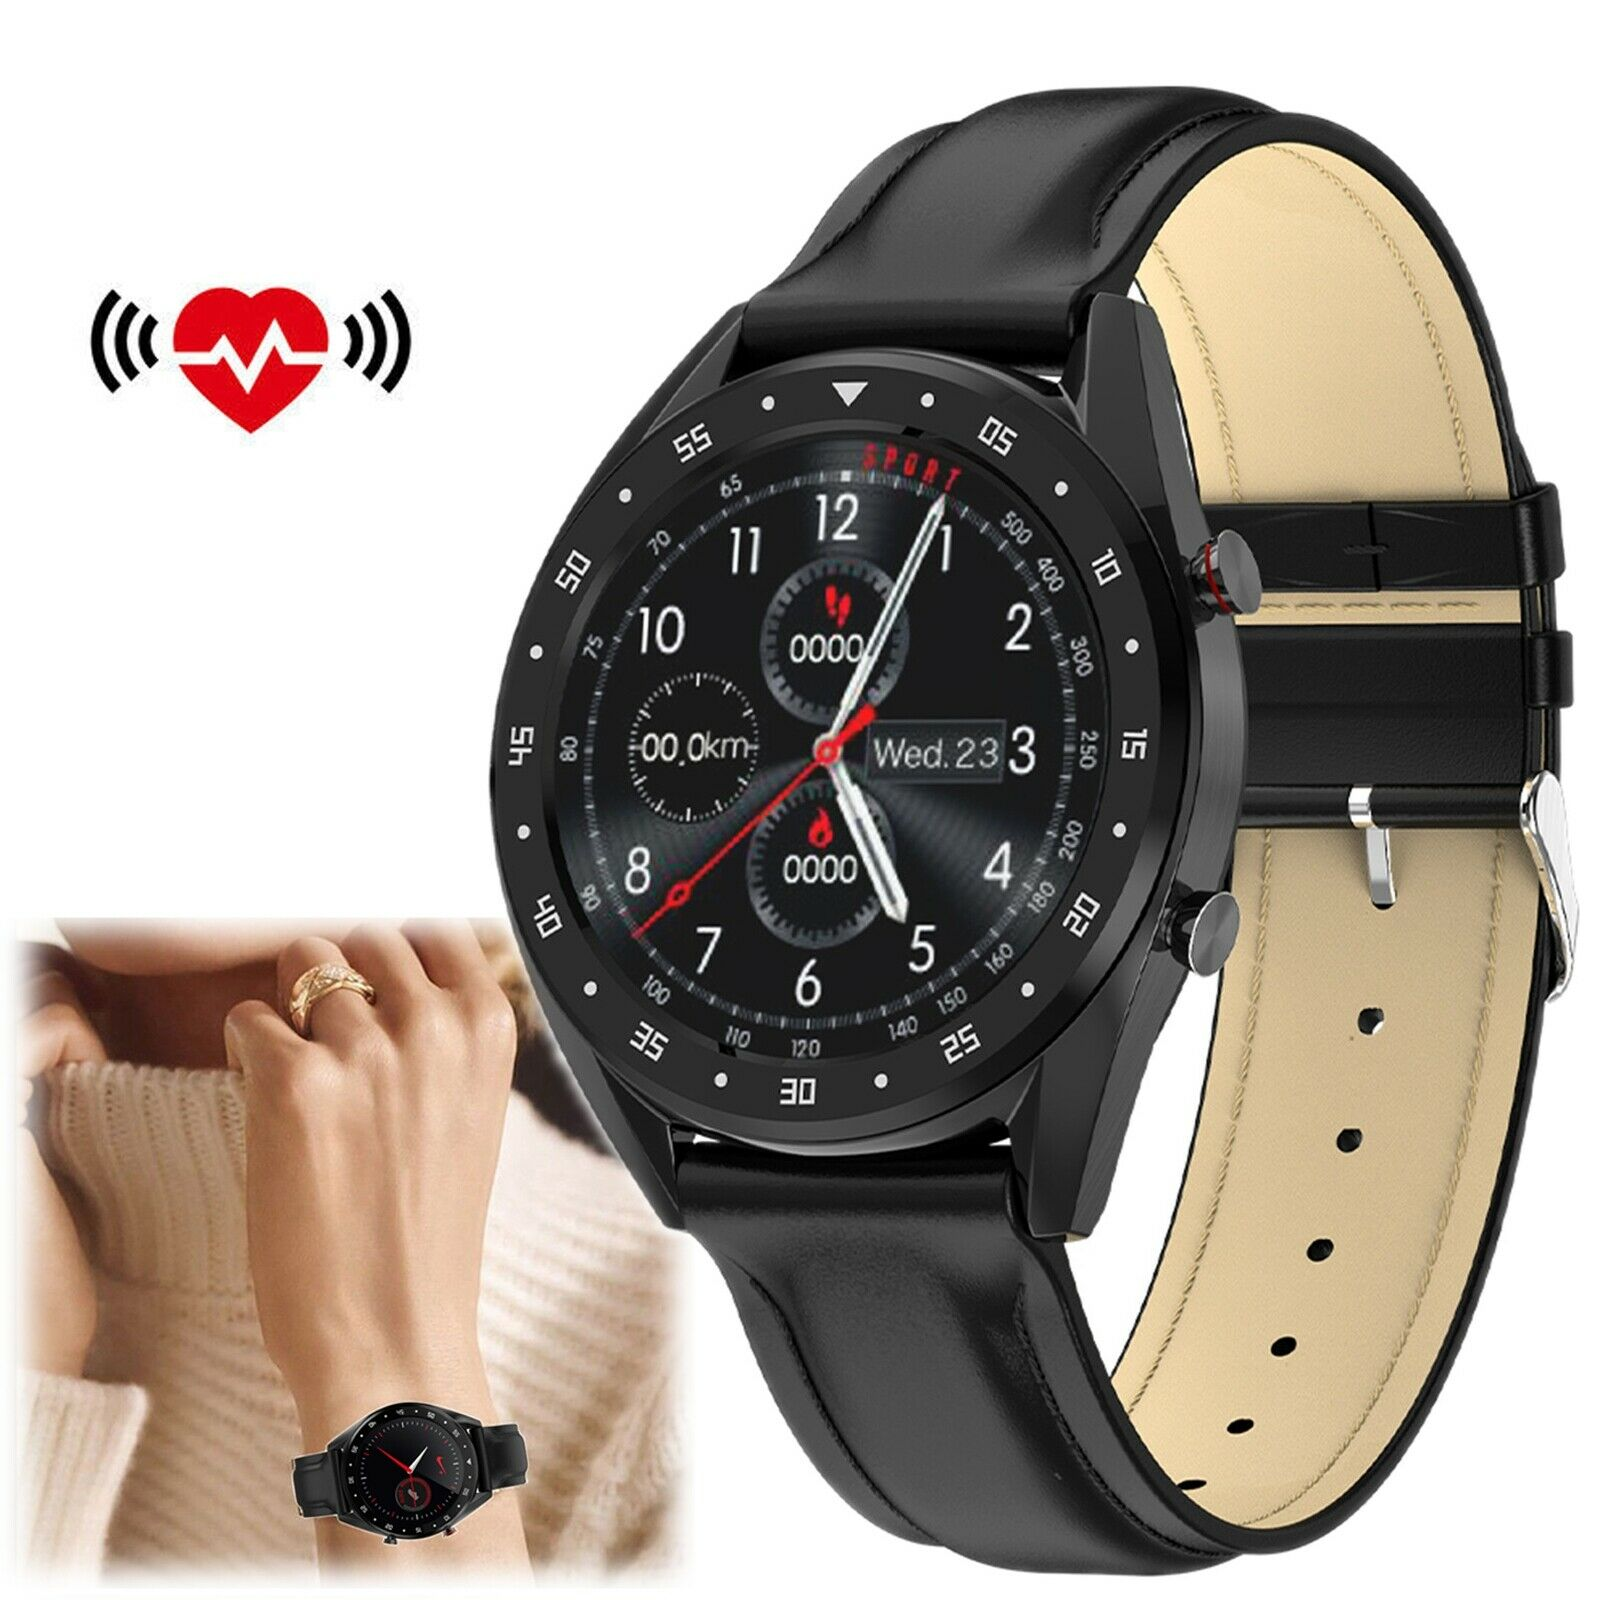 Bluetooth Smart Watch Heart Rate Wristwatch for iPhone Samsung S10 S10e S9 S8 S7 bluetooth Featured for heart iphone rate s10 samsung smart watch wristwatch